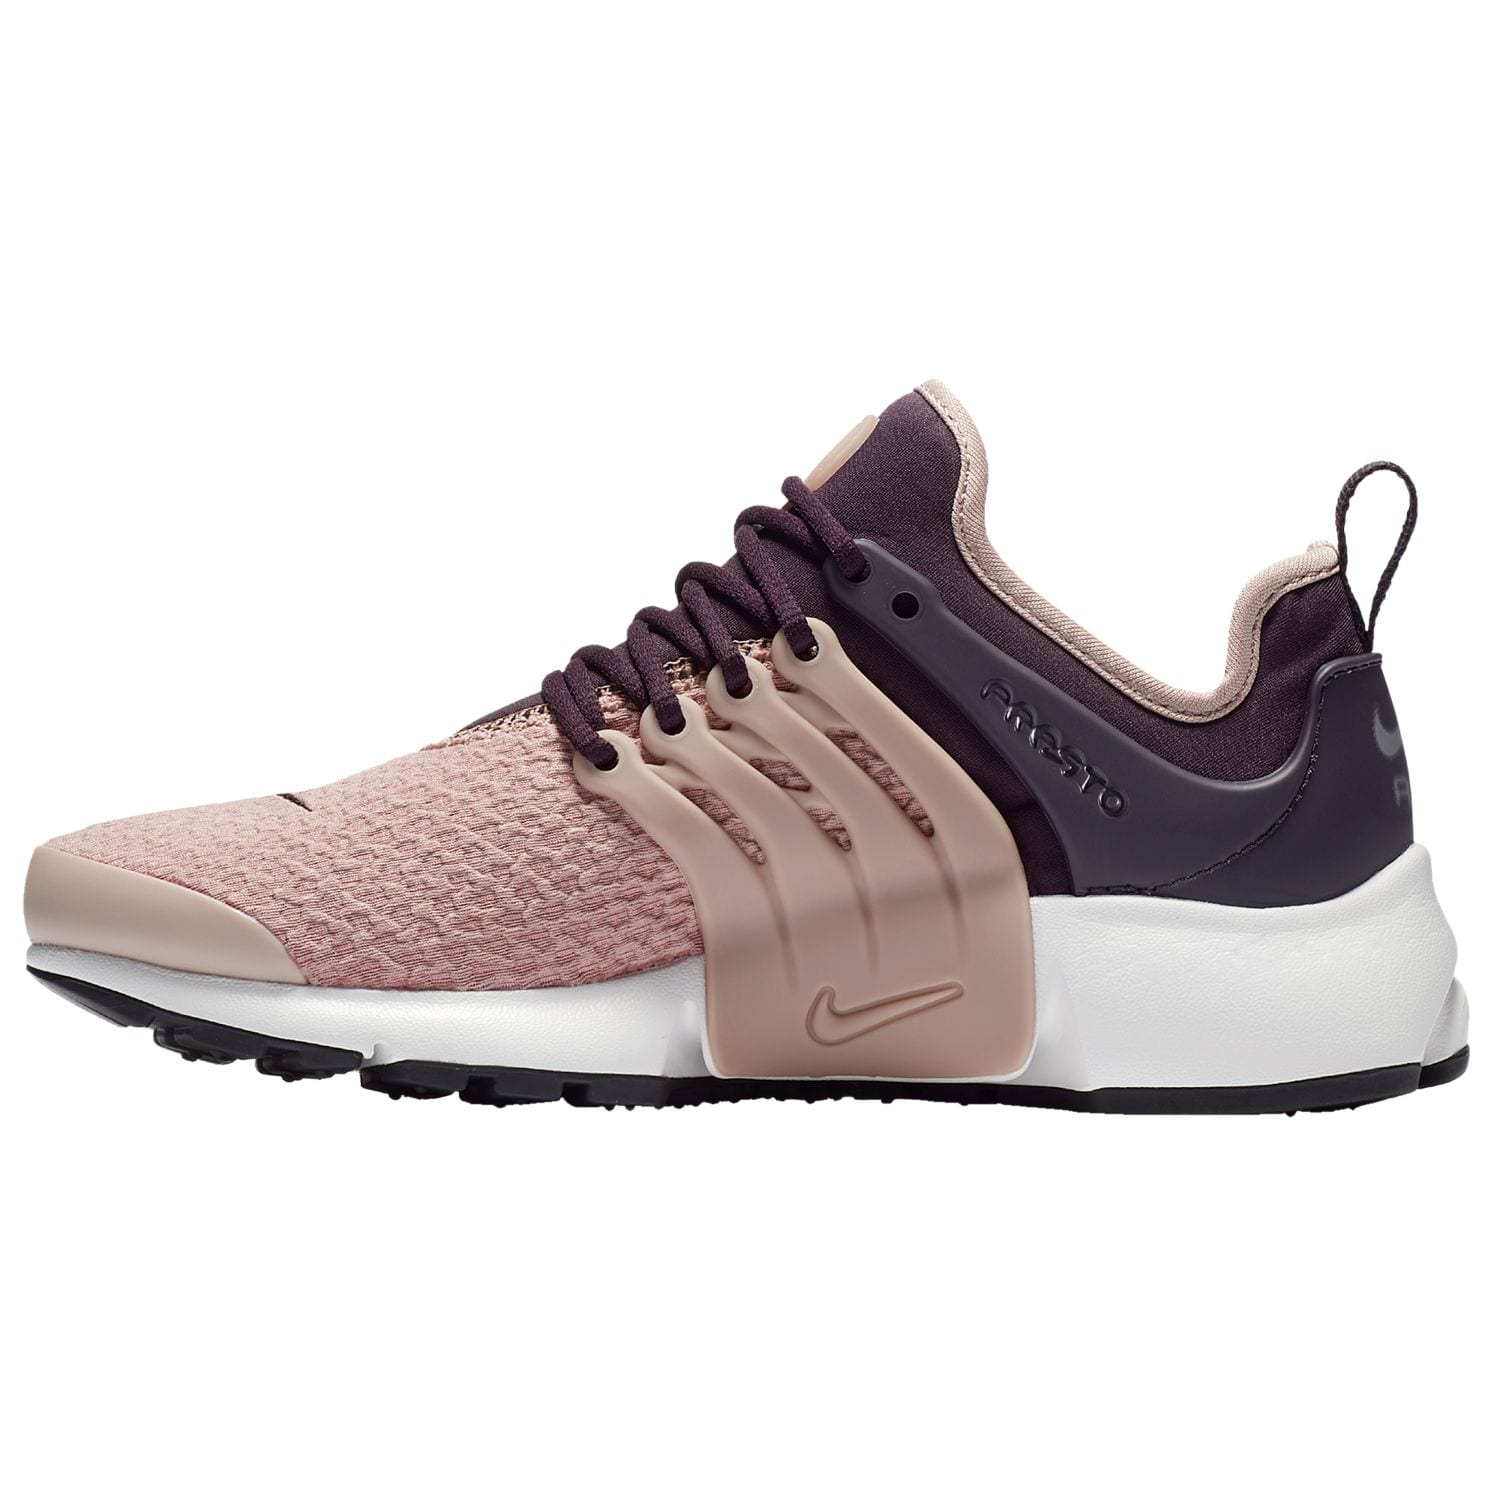 competitive price 47eb1 8bf08 Nike Air Presto Womens : Up to 60% off - Buy Nike Shoes at ...